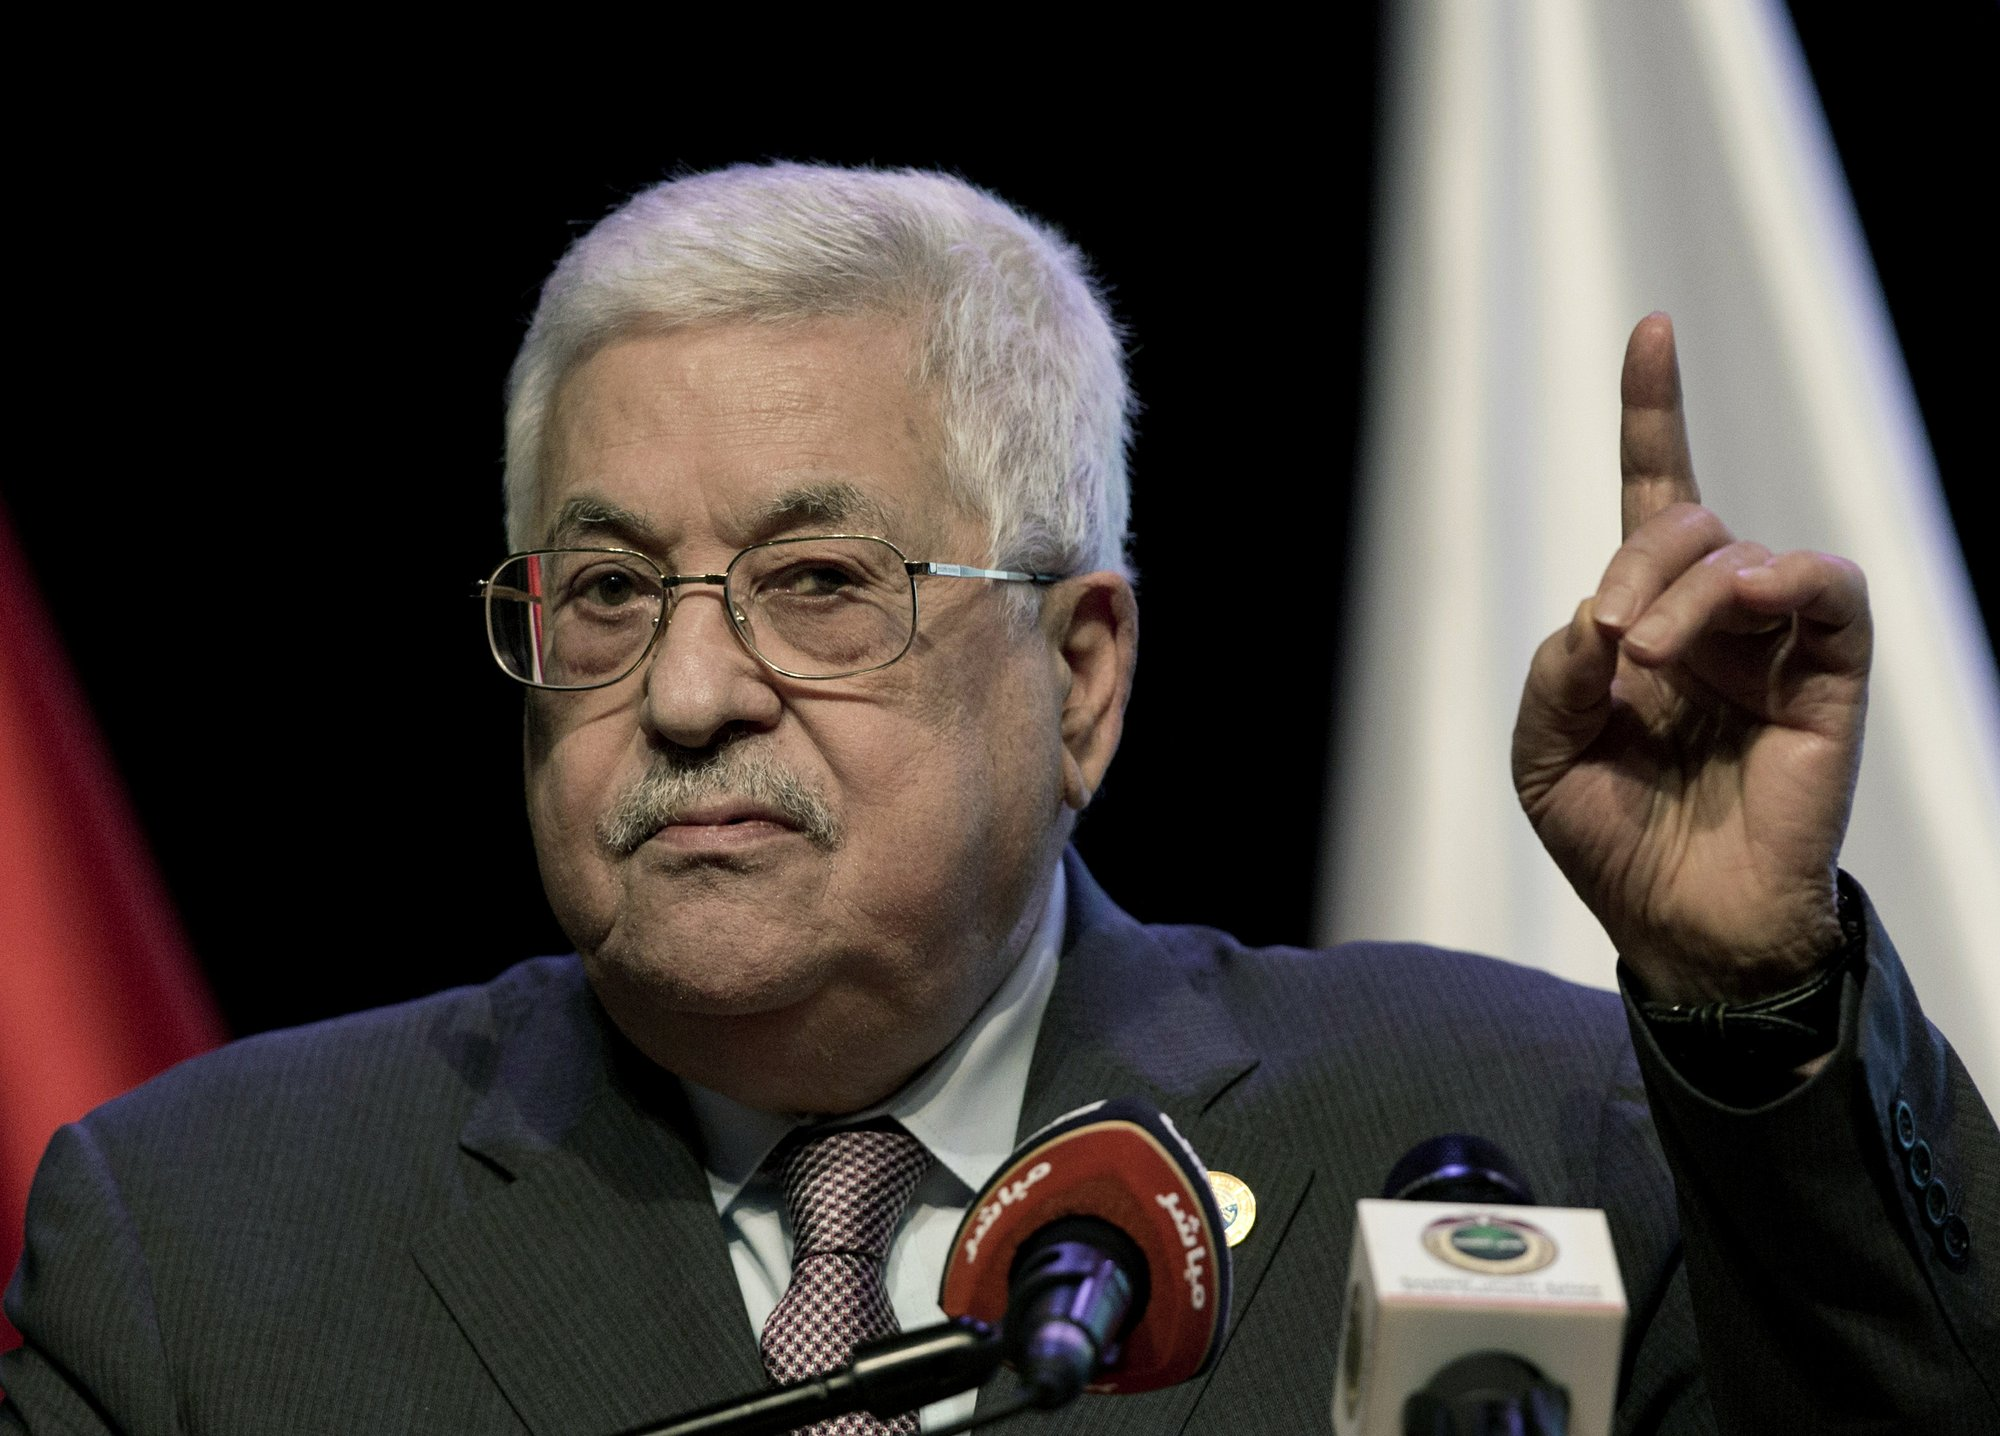 Palestinian court blocks 59 websites critical of government